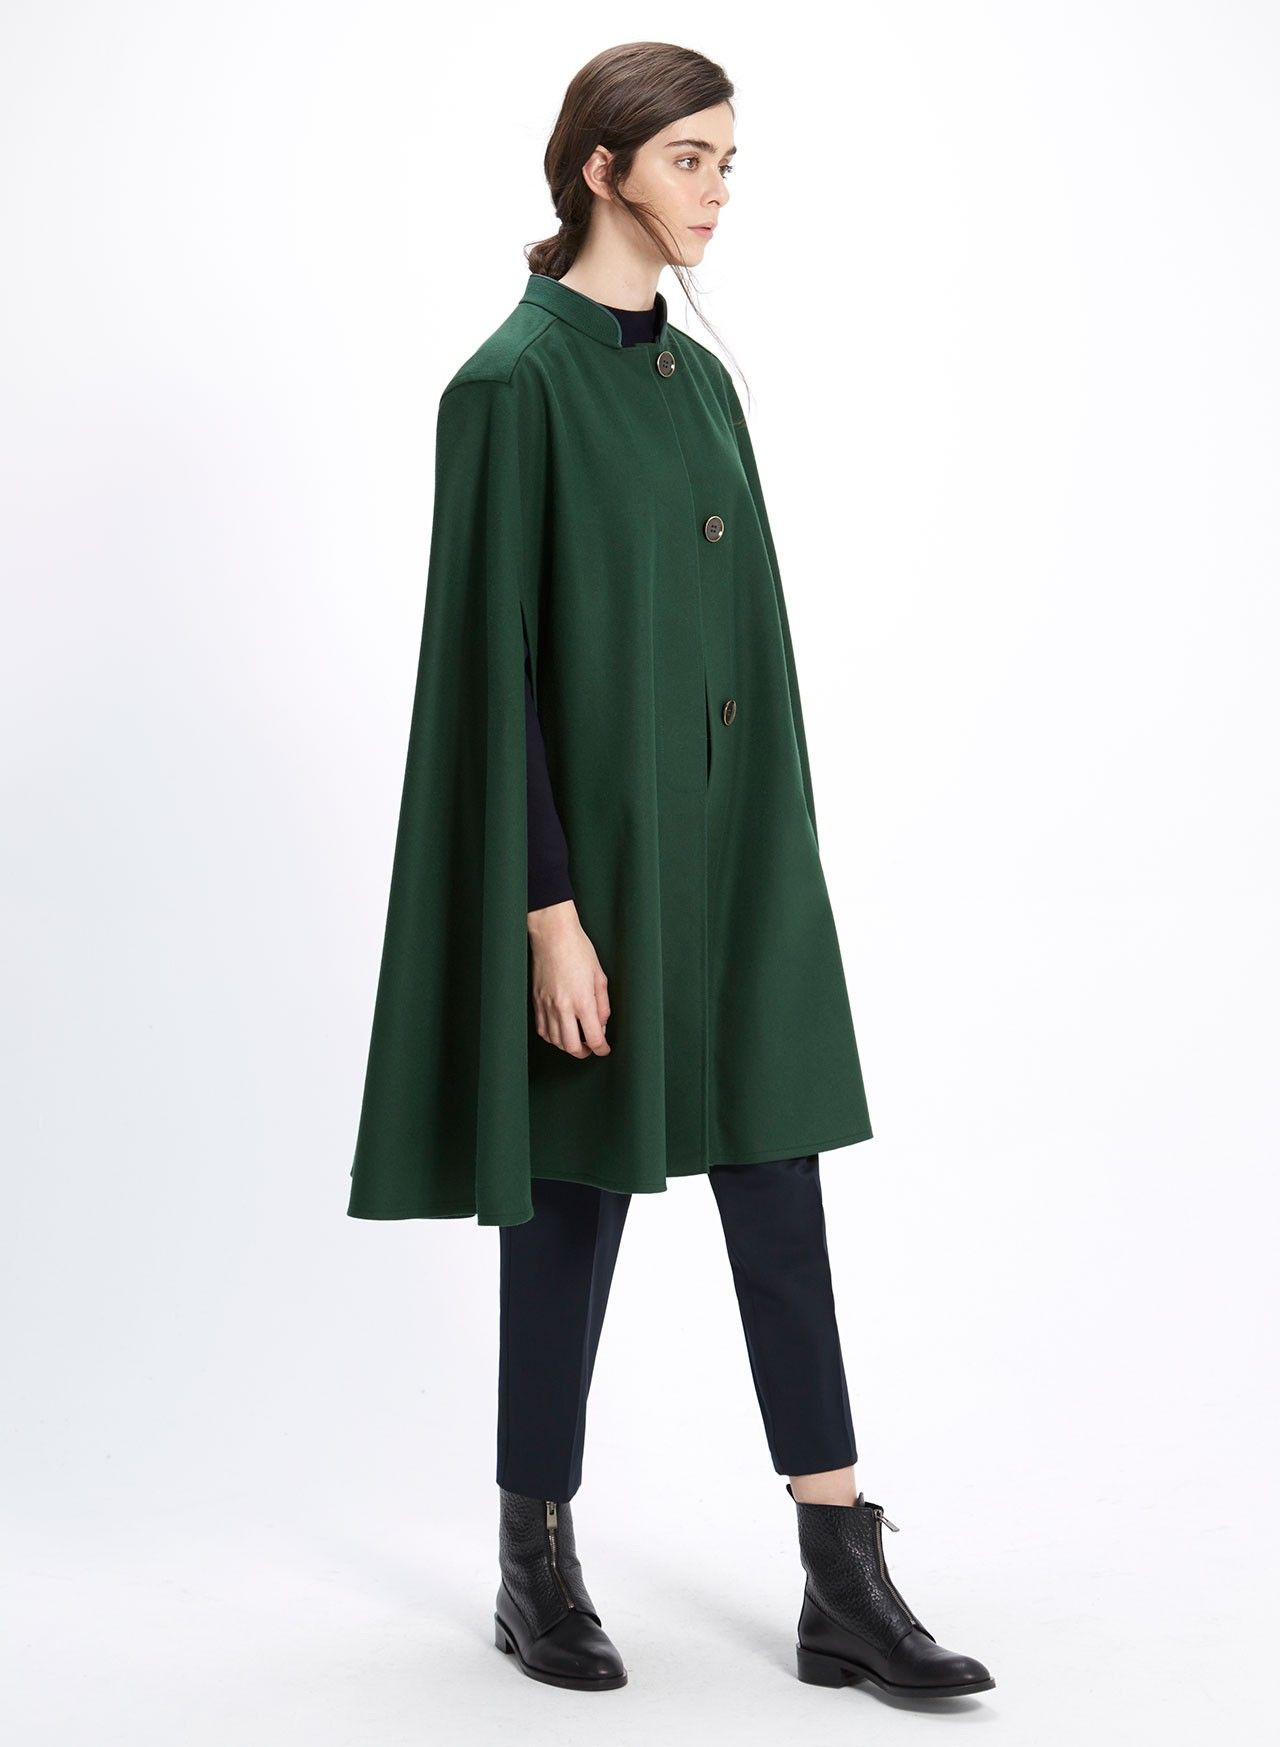 ES: Capa Catherine Verde. Capa de lana merino con aberturas, cuello mao y abotonadura oculta. EN: Catherine Cape - Green. Merino wool cape with openings, hidden closing and mao collar.